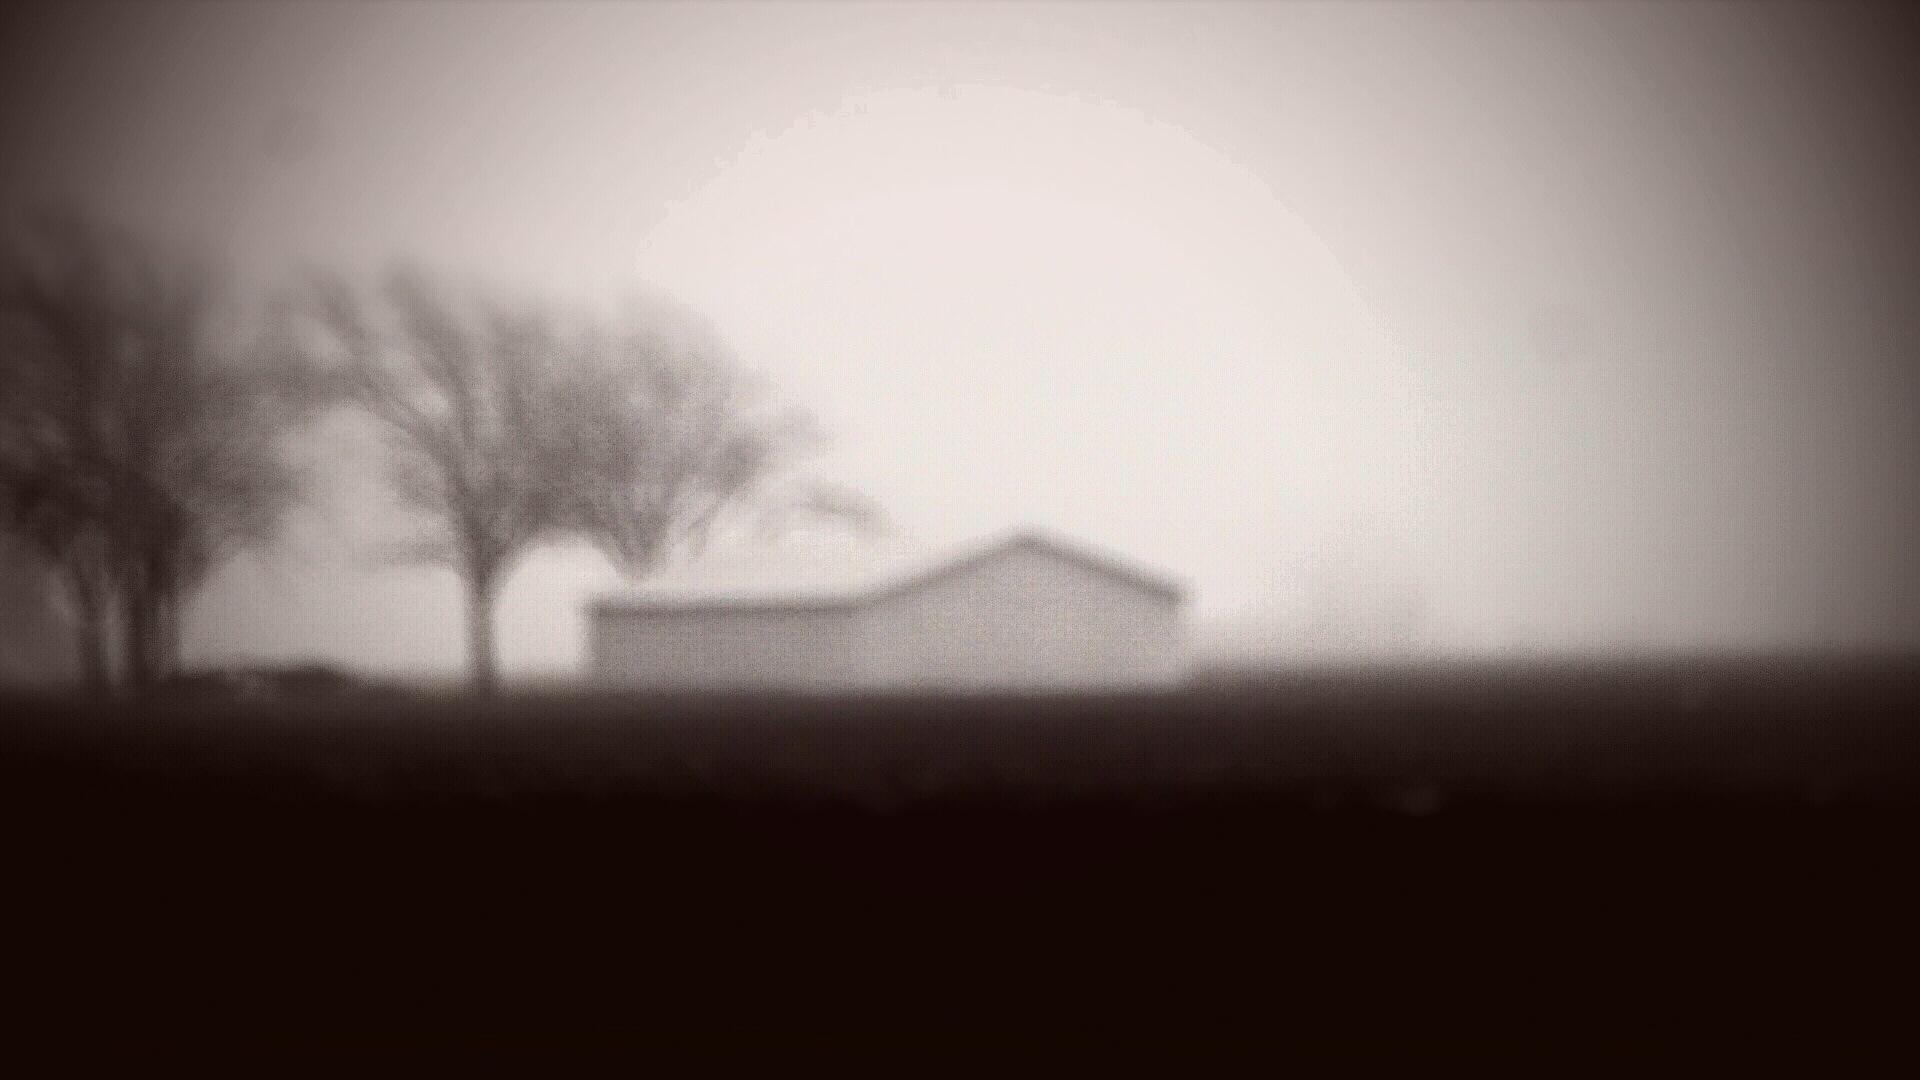 country goThic .. . .  by keith sharp